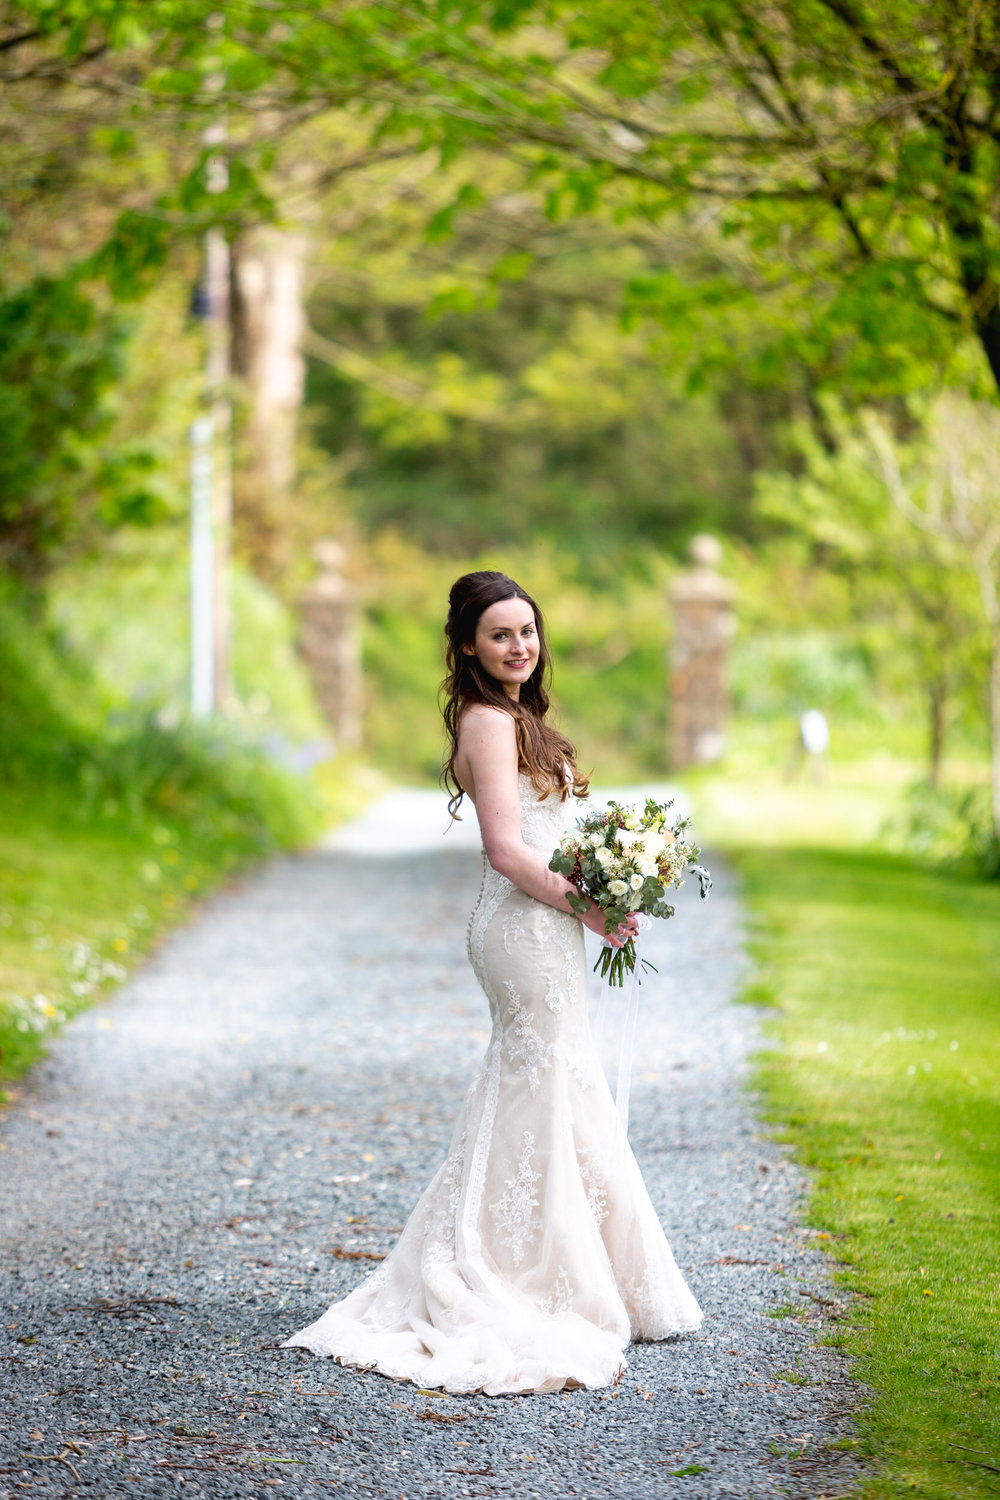 Launcells-Barton-Wedding-Photographer (484).jpg